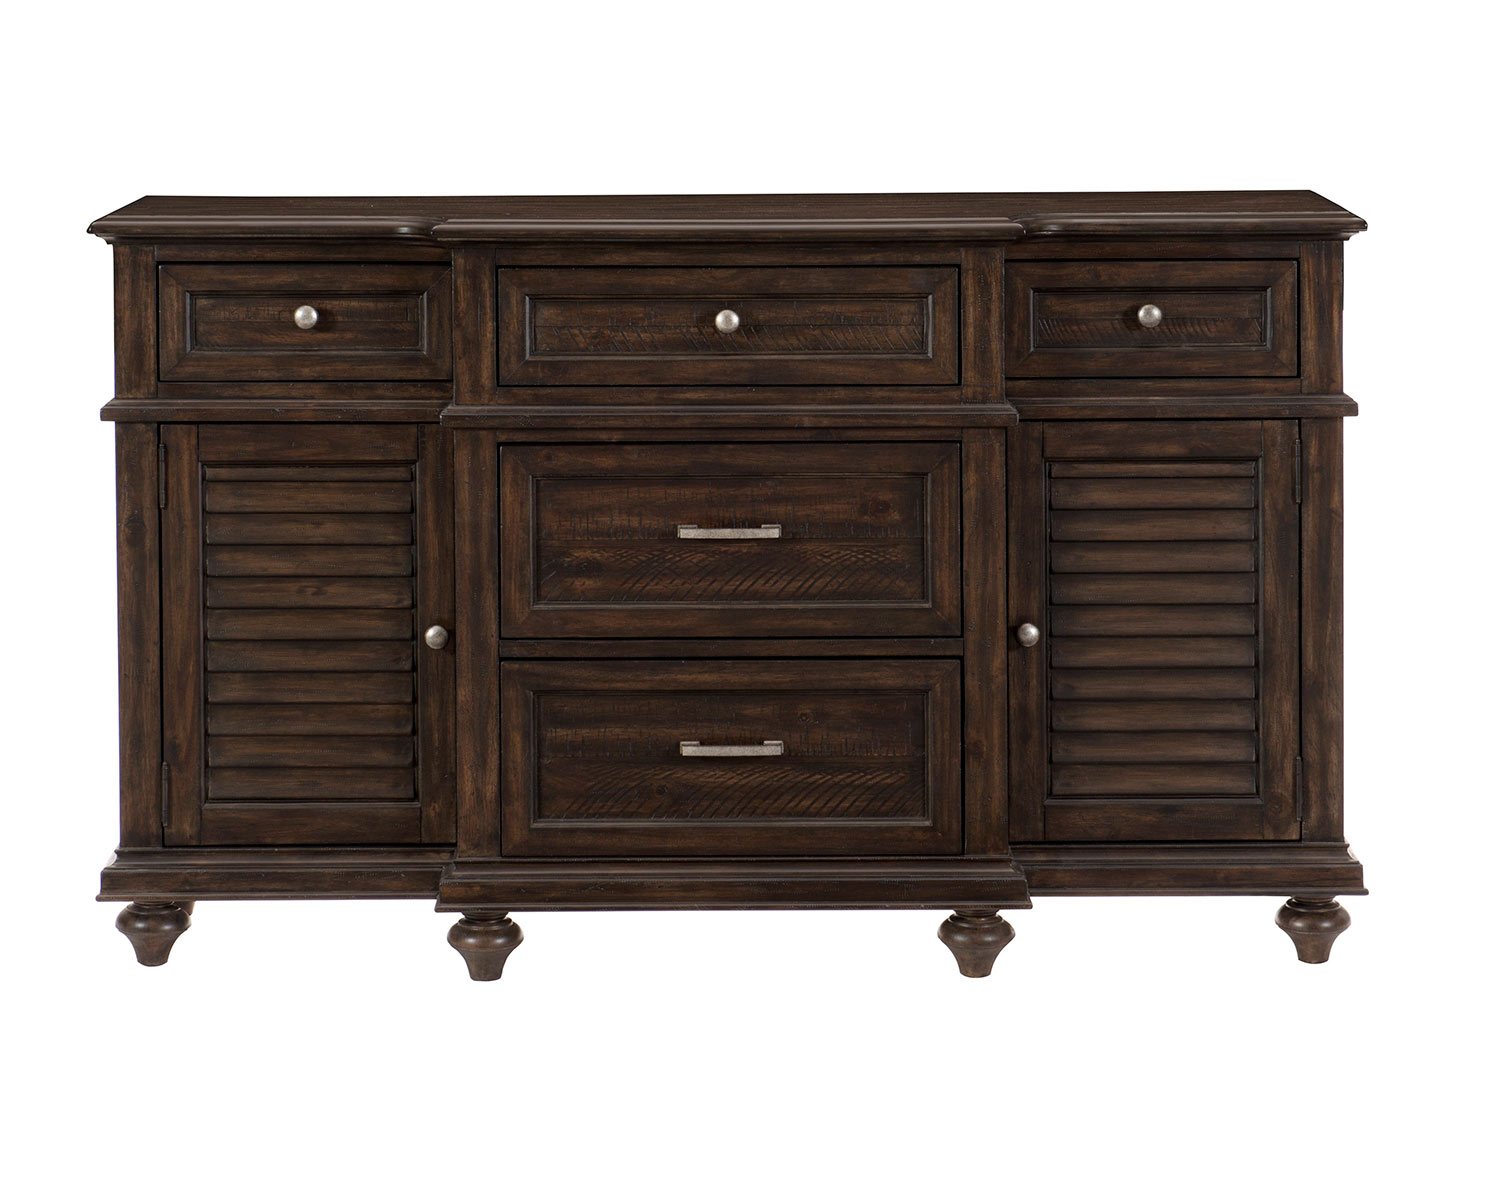 Homelegance Cardano Buffet / Server - Driftwood Charcoal